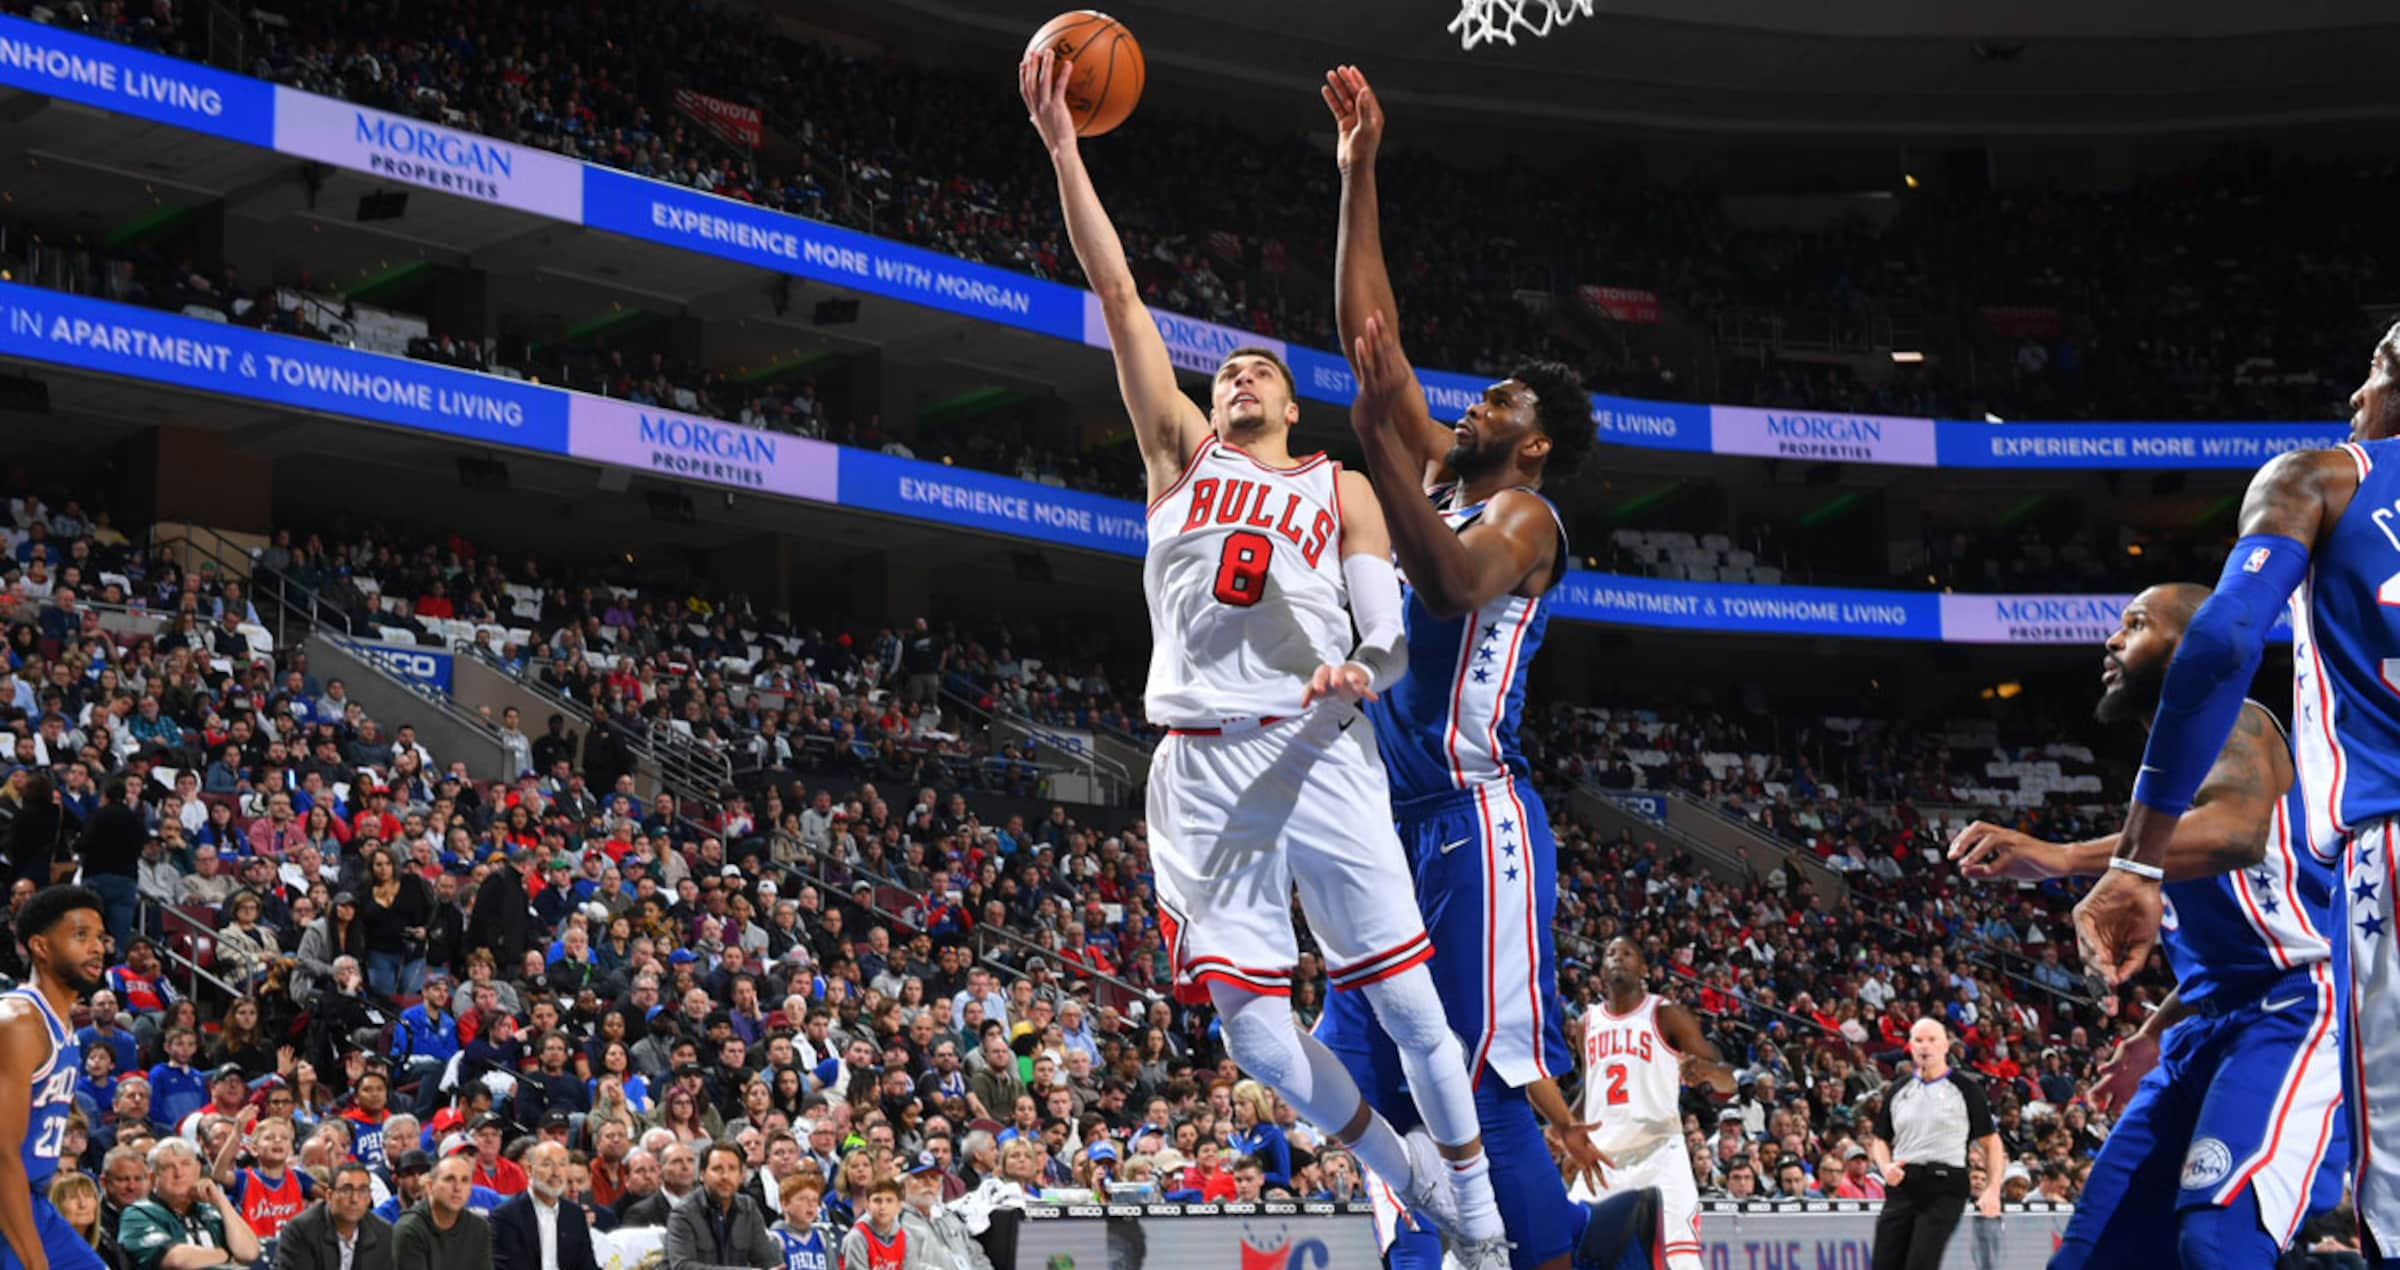 Zach LaVine attempting a layup against the Philadelphia 76ers